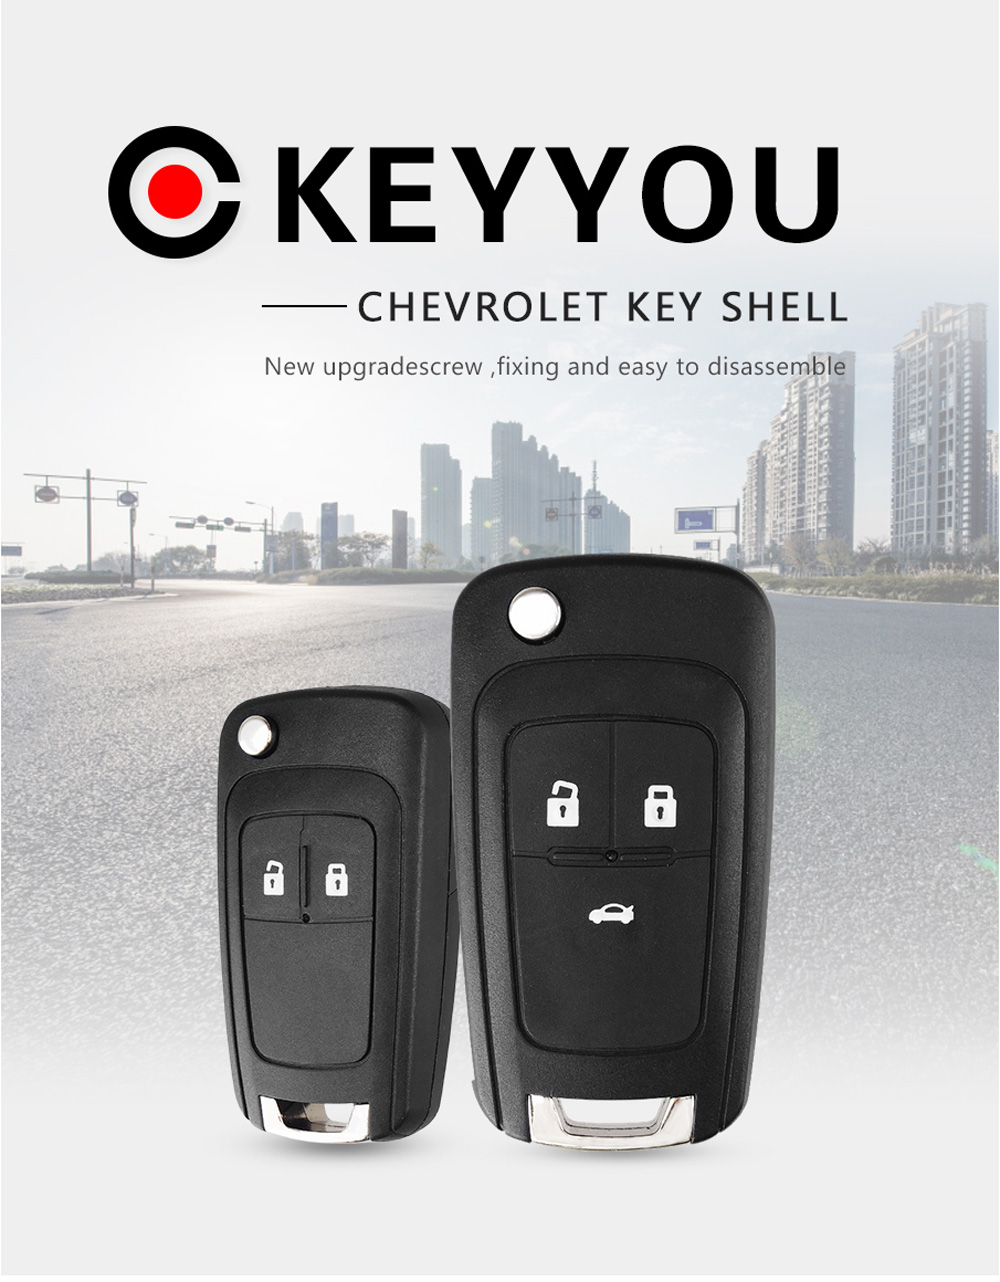 Keyyou Flip Folding Remote Car Key Shell For Chevrolet Cruze Epica Lova Camaro Impala 3 Buttons Hu100 Uncut Blade Buy Cruze Key Chevrolet Epica Chevrolet Key Product On Alibaba Com